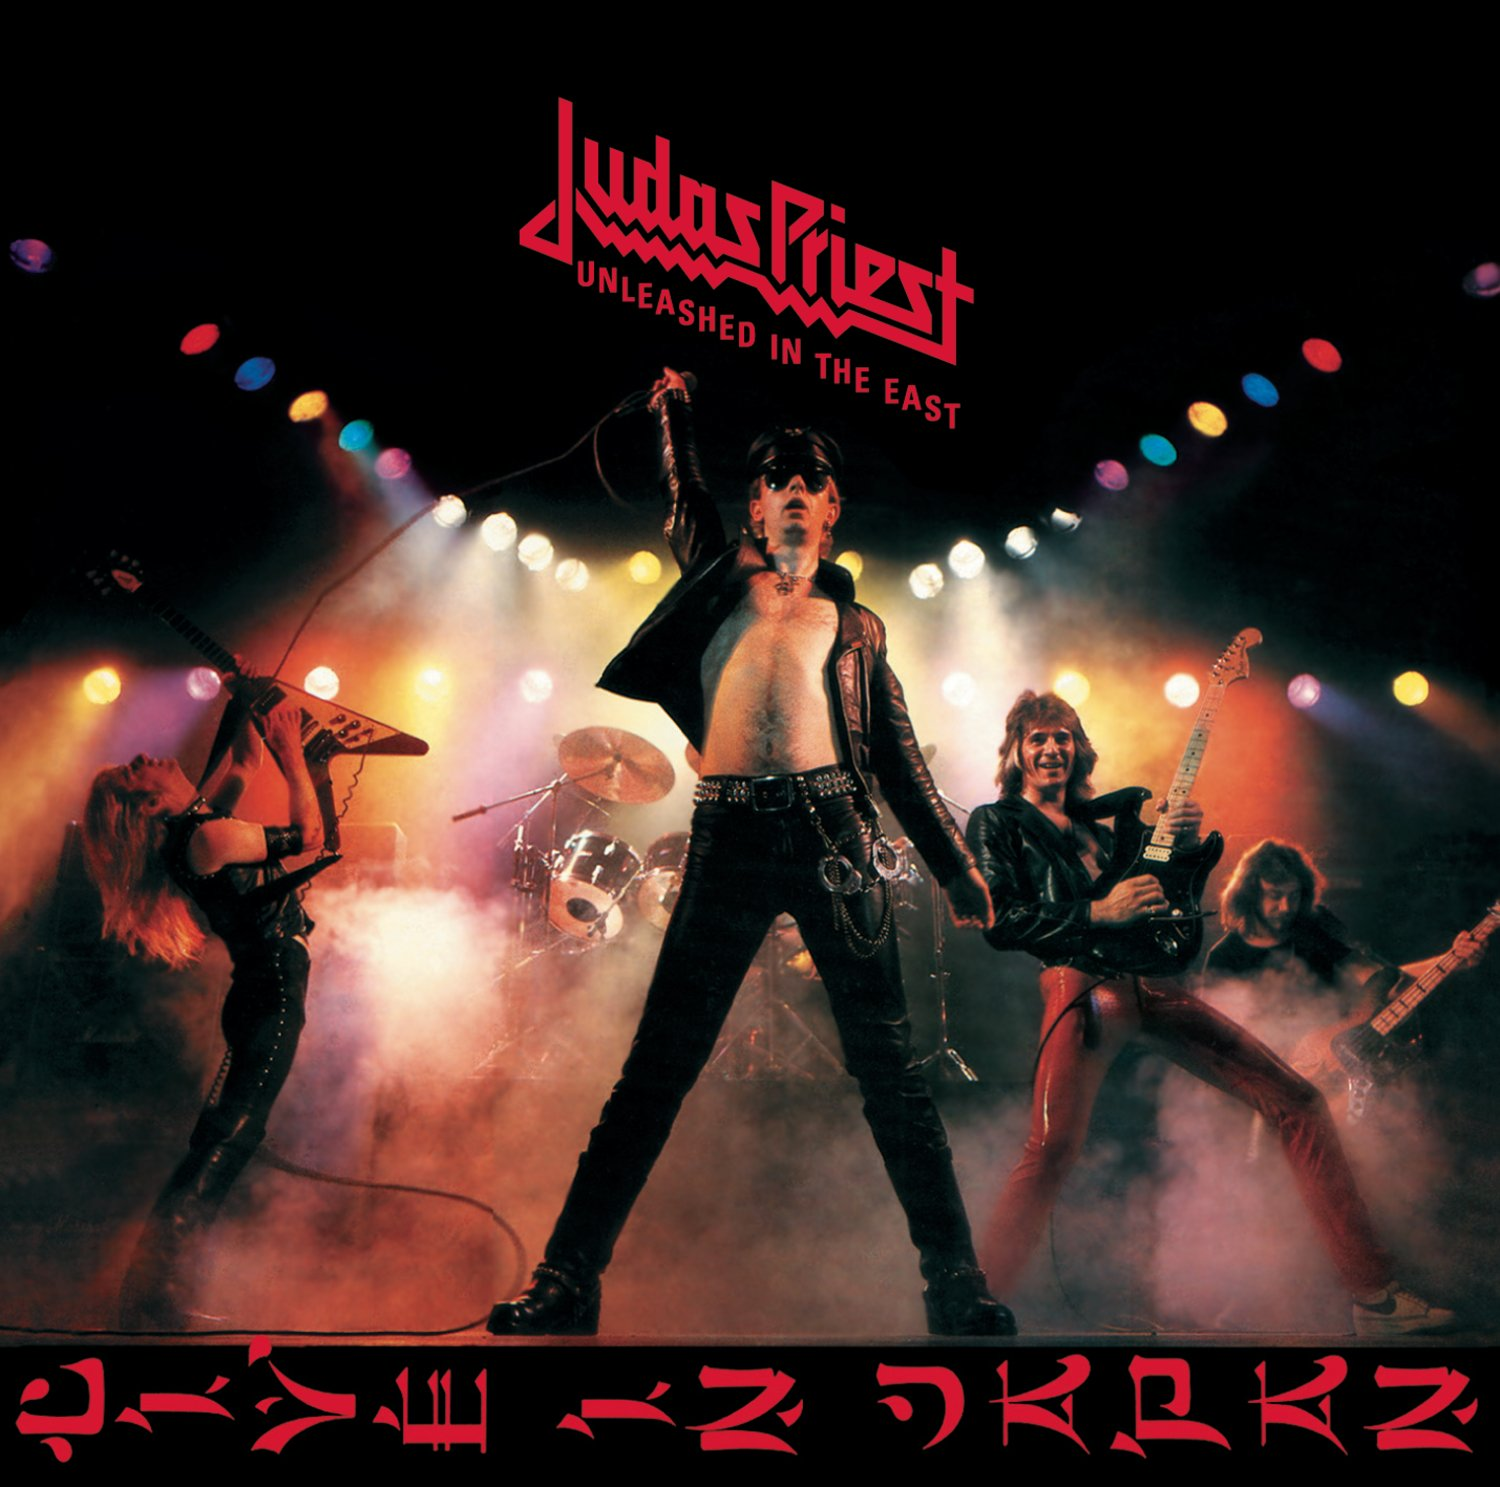 Judas Priest - Unleashed In The East : Live In Japan (1979)